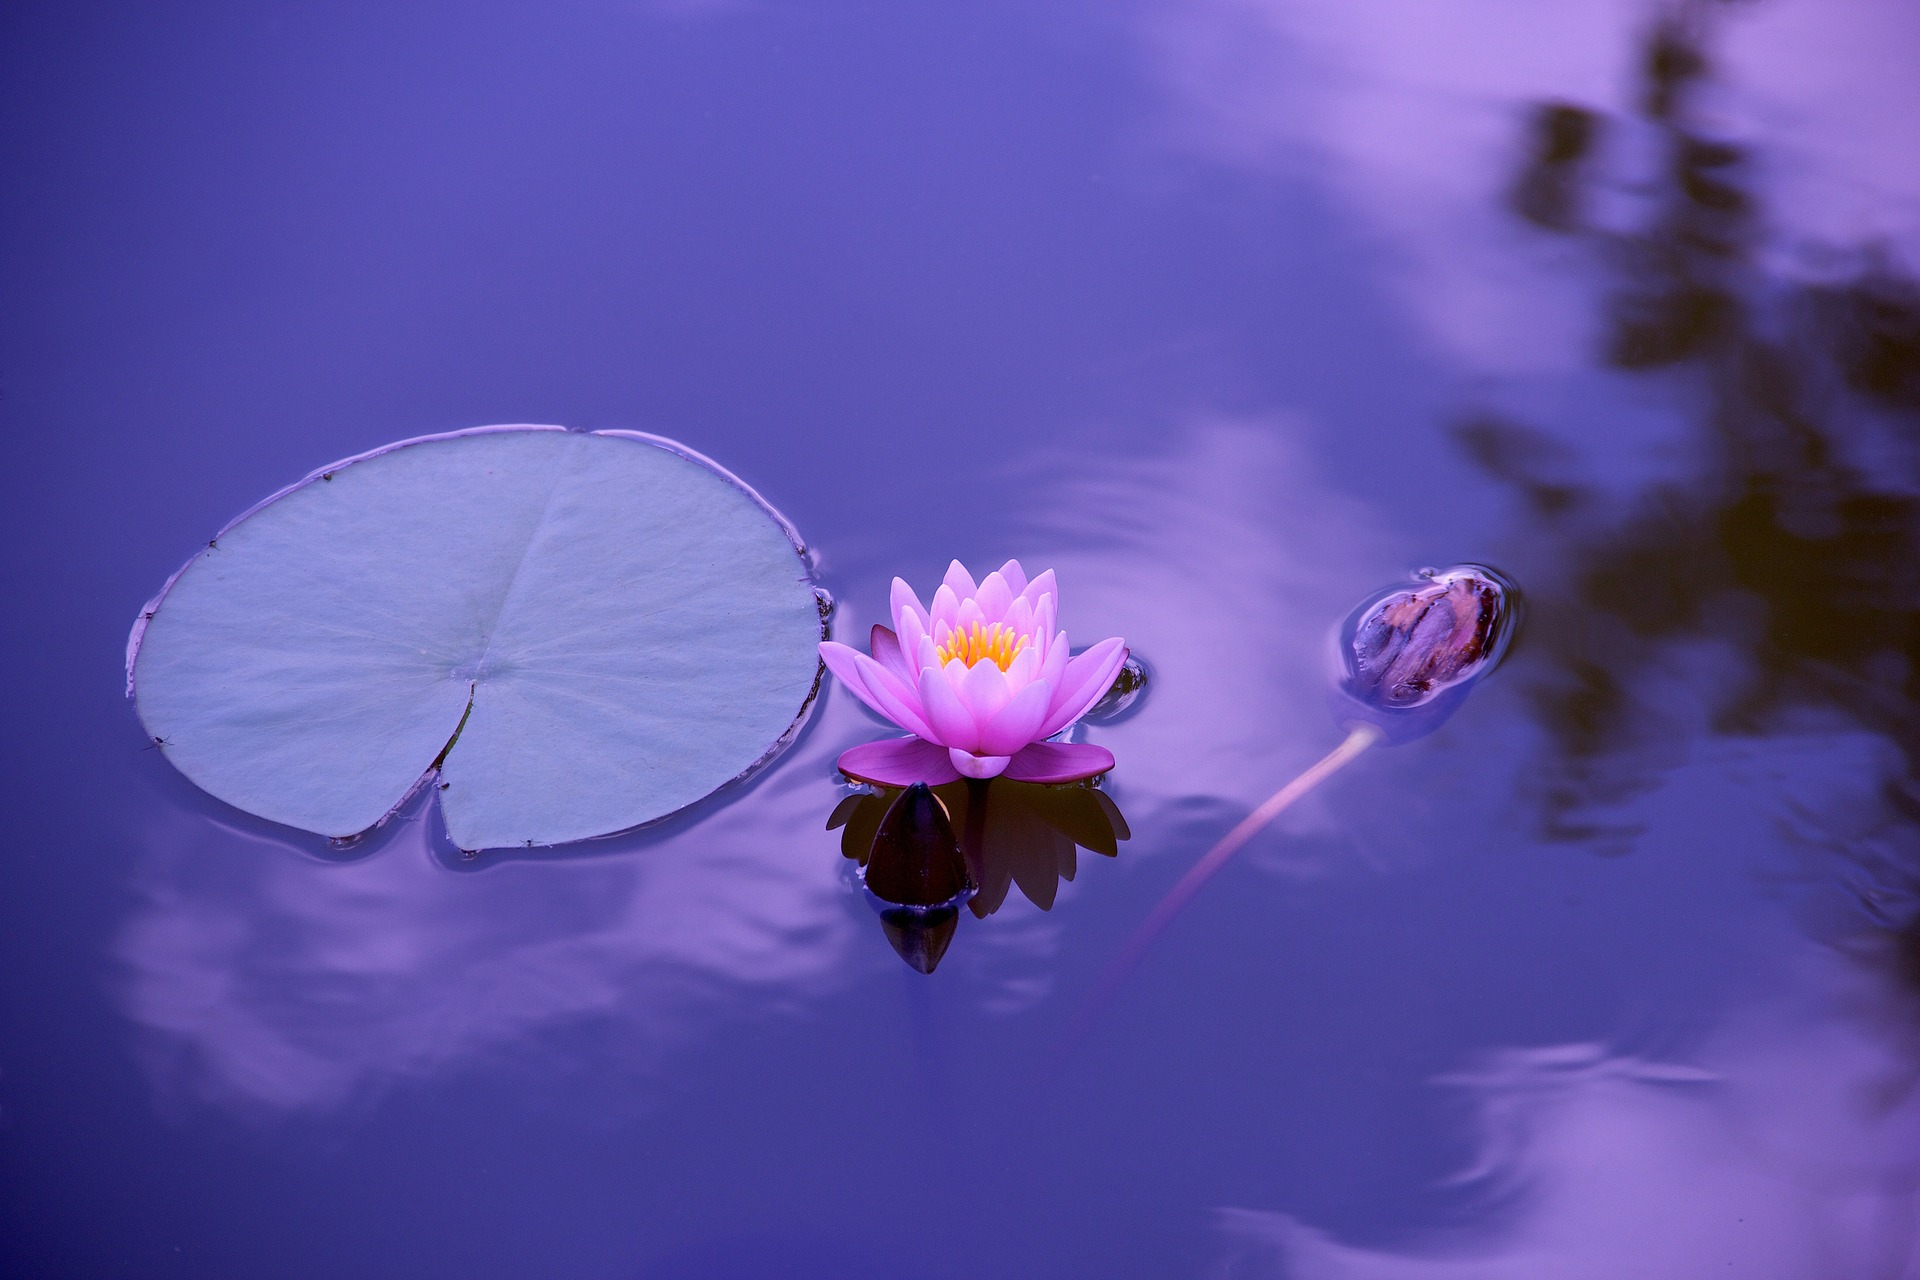 lotus flower on a pond